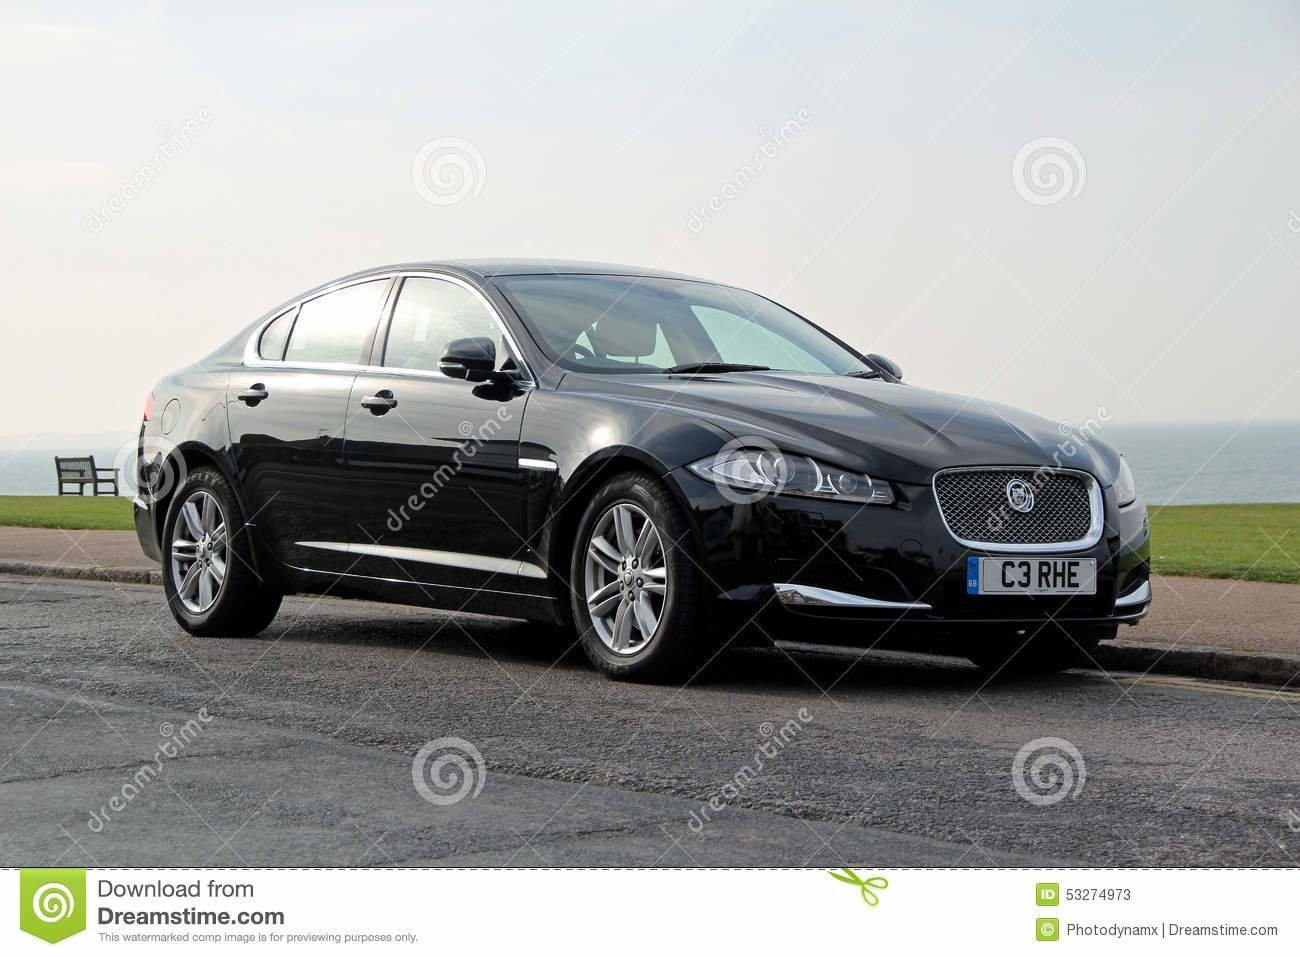 Latest Jaguar Xf Car Editorial Stock Photo Image Of British Free Download